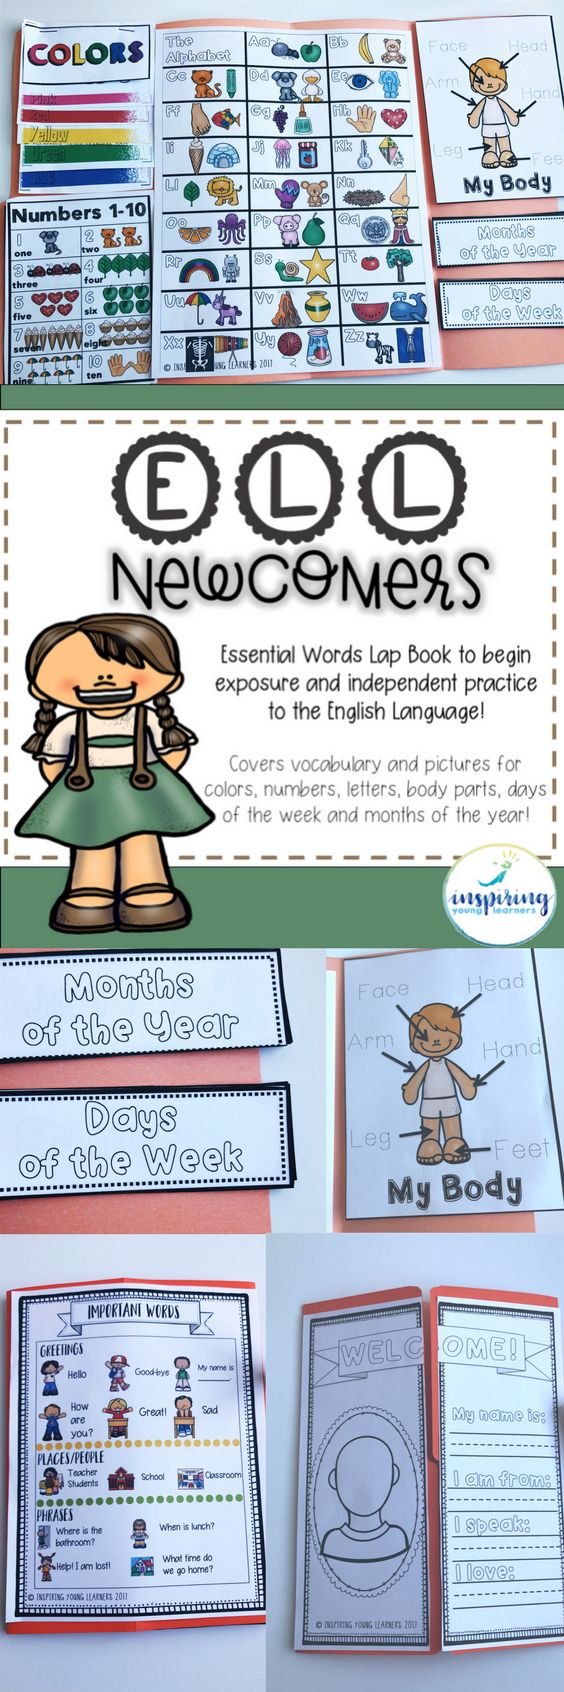 Welcoming Newcomers or Non-English students into your classroom with this Essential Words Lap Book will be a sure way to help them start off on the right foot and feel excited about learning English. This lap book will expose newcomer students to important English vocabulary such as the alphabet, numbers, colors, body parts, days of the week and months of the year.  #ell #esl #ellnewcomers #tesol